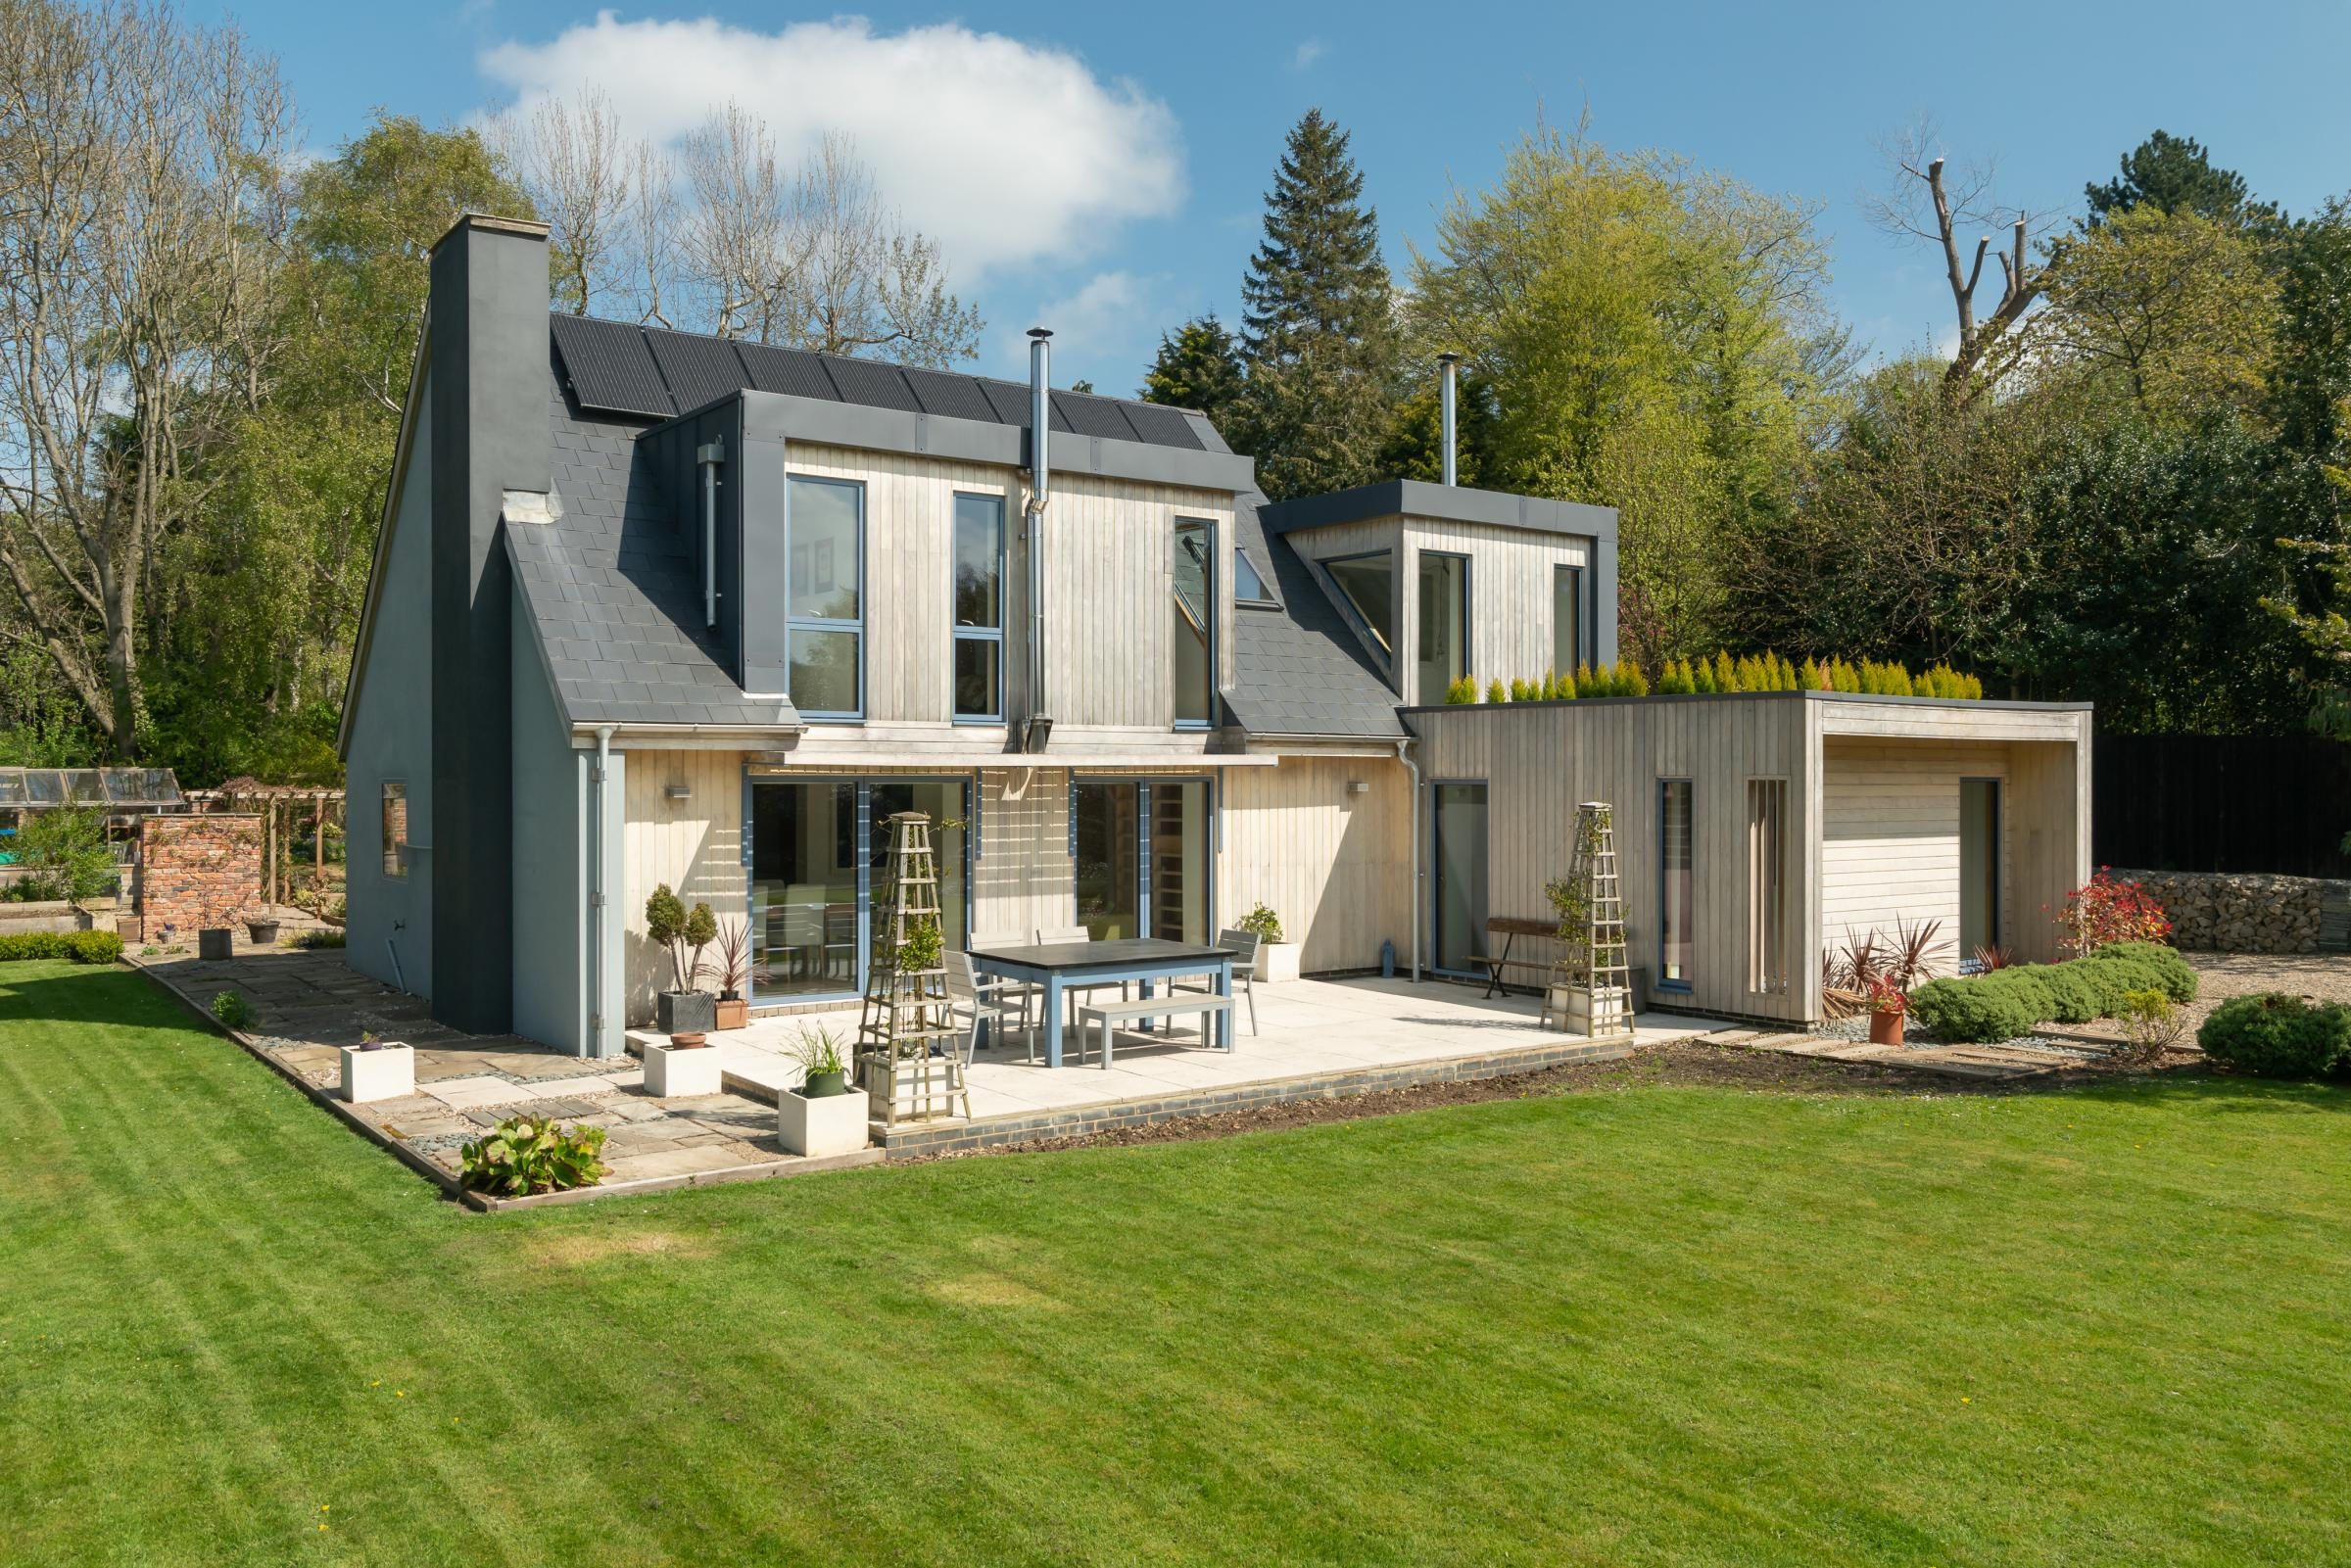 The Garden House in a sought-after Stocksfield location is a magnificent eco-home designed to the highest energy-efficent standards and set in beautiful landscaped grounds